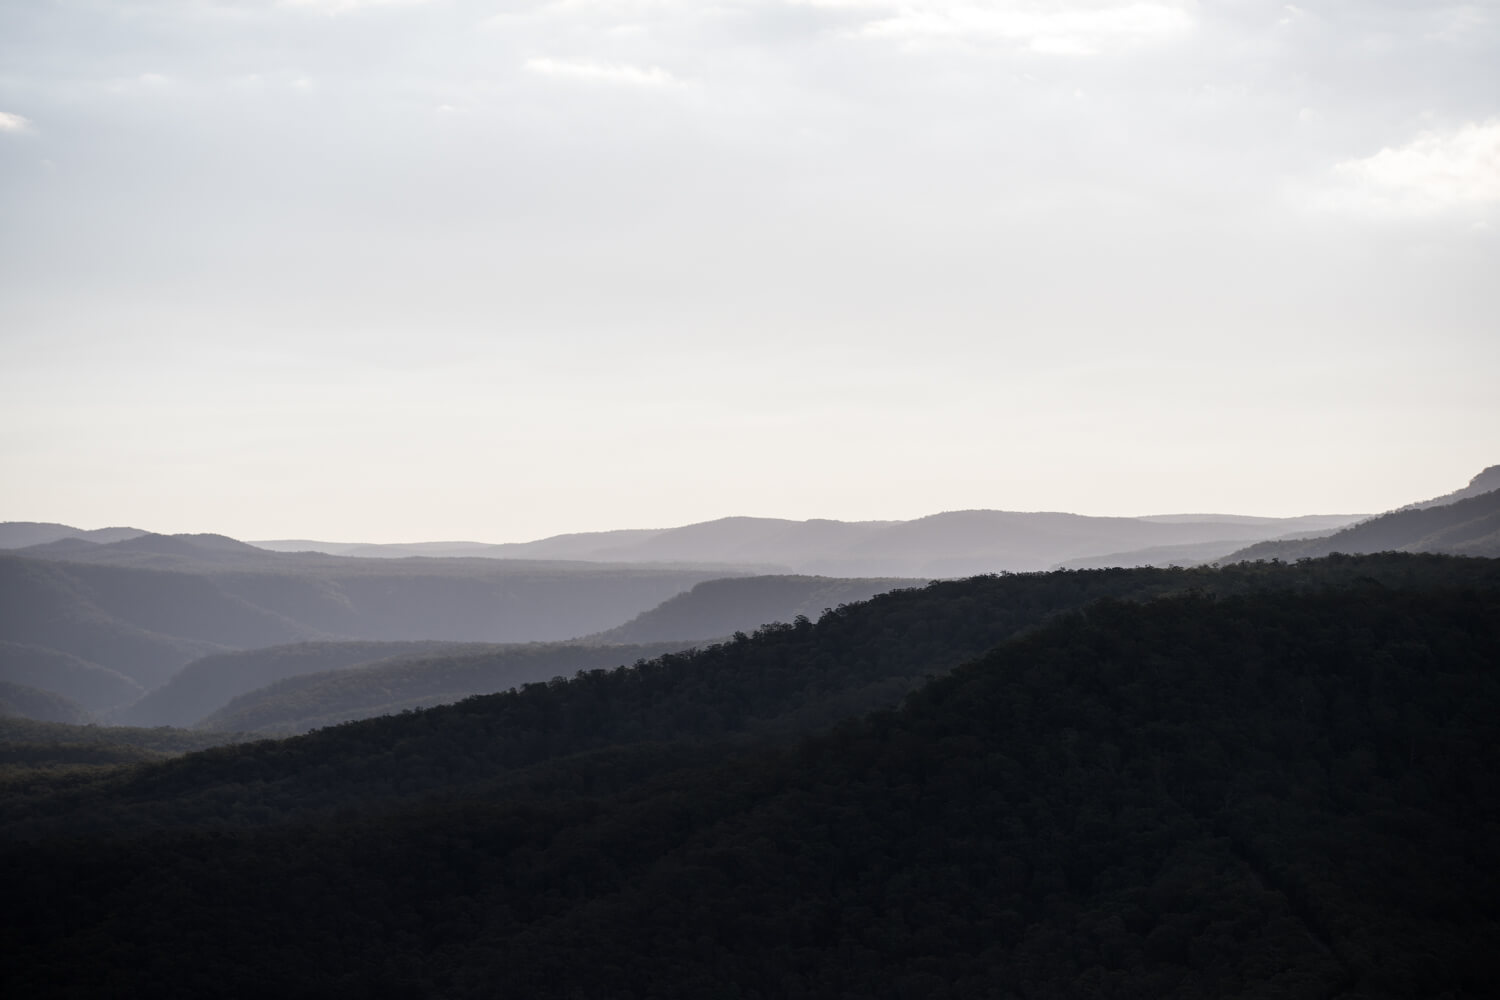 scenery of kangaroo valley bush retreat